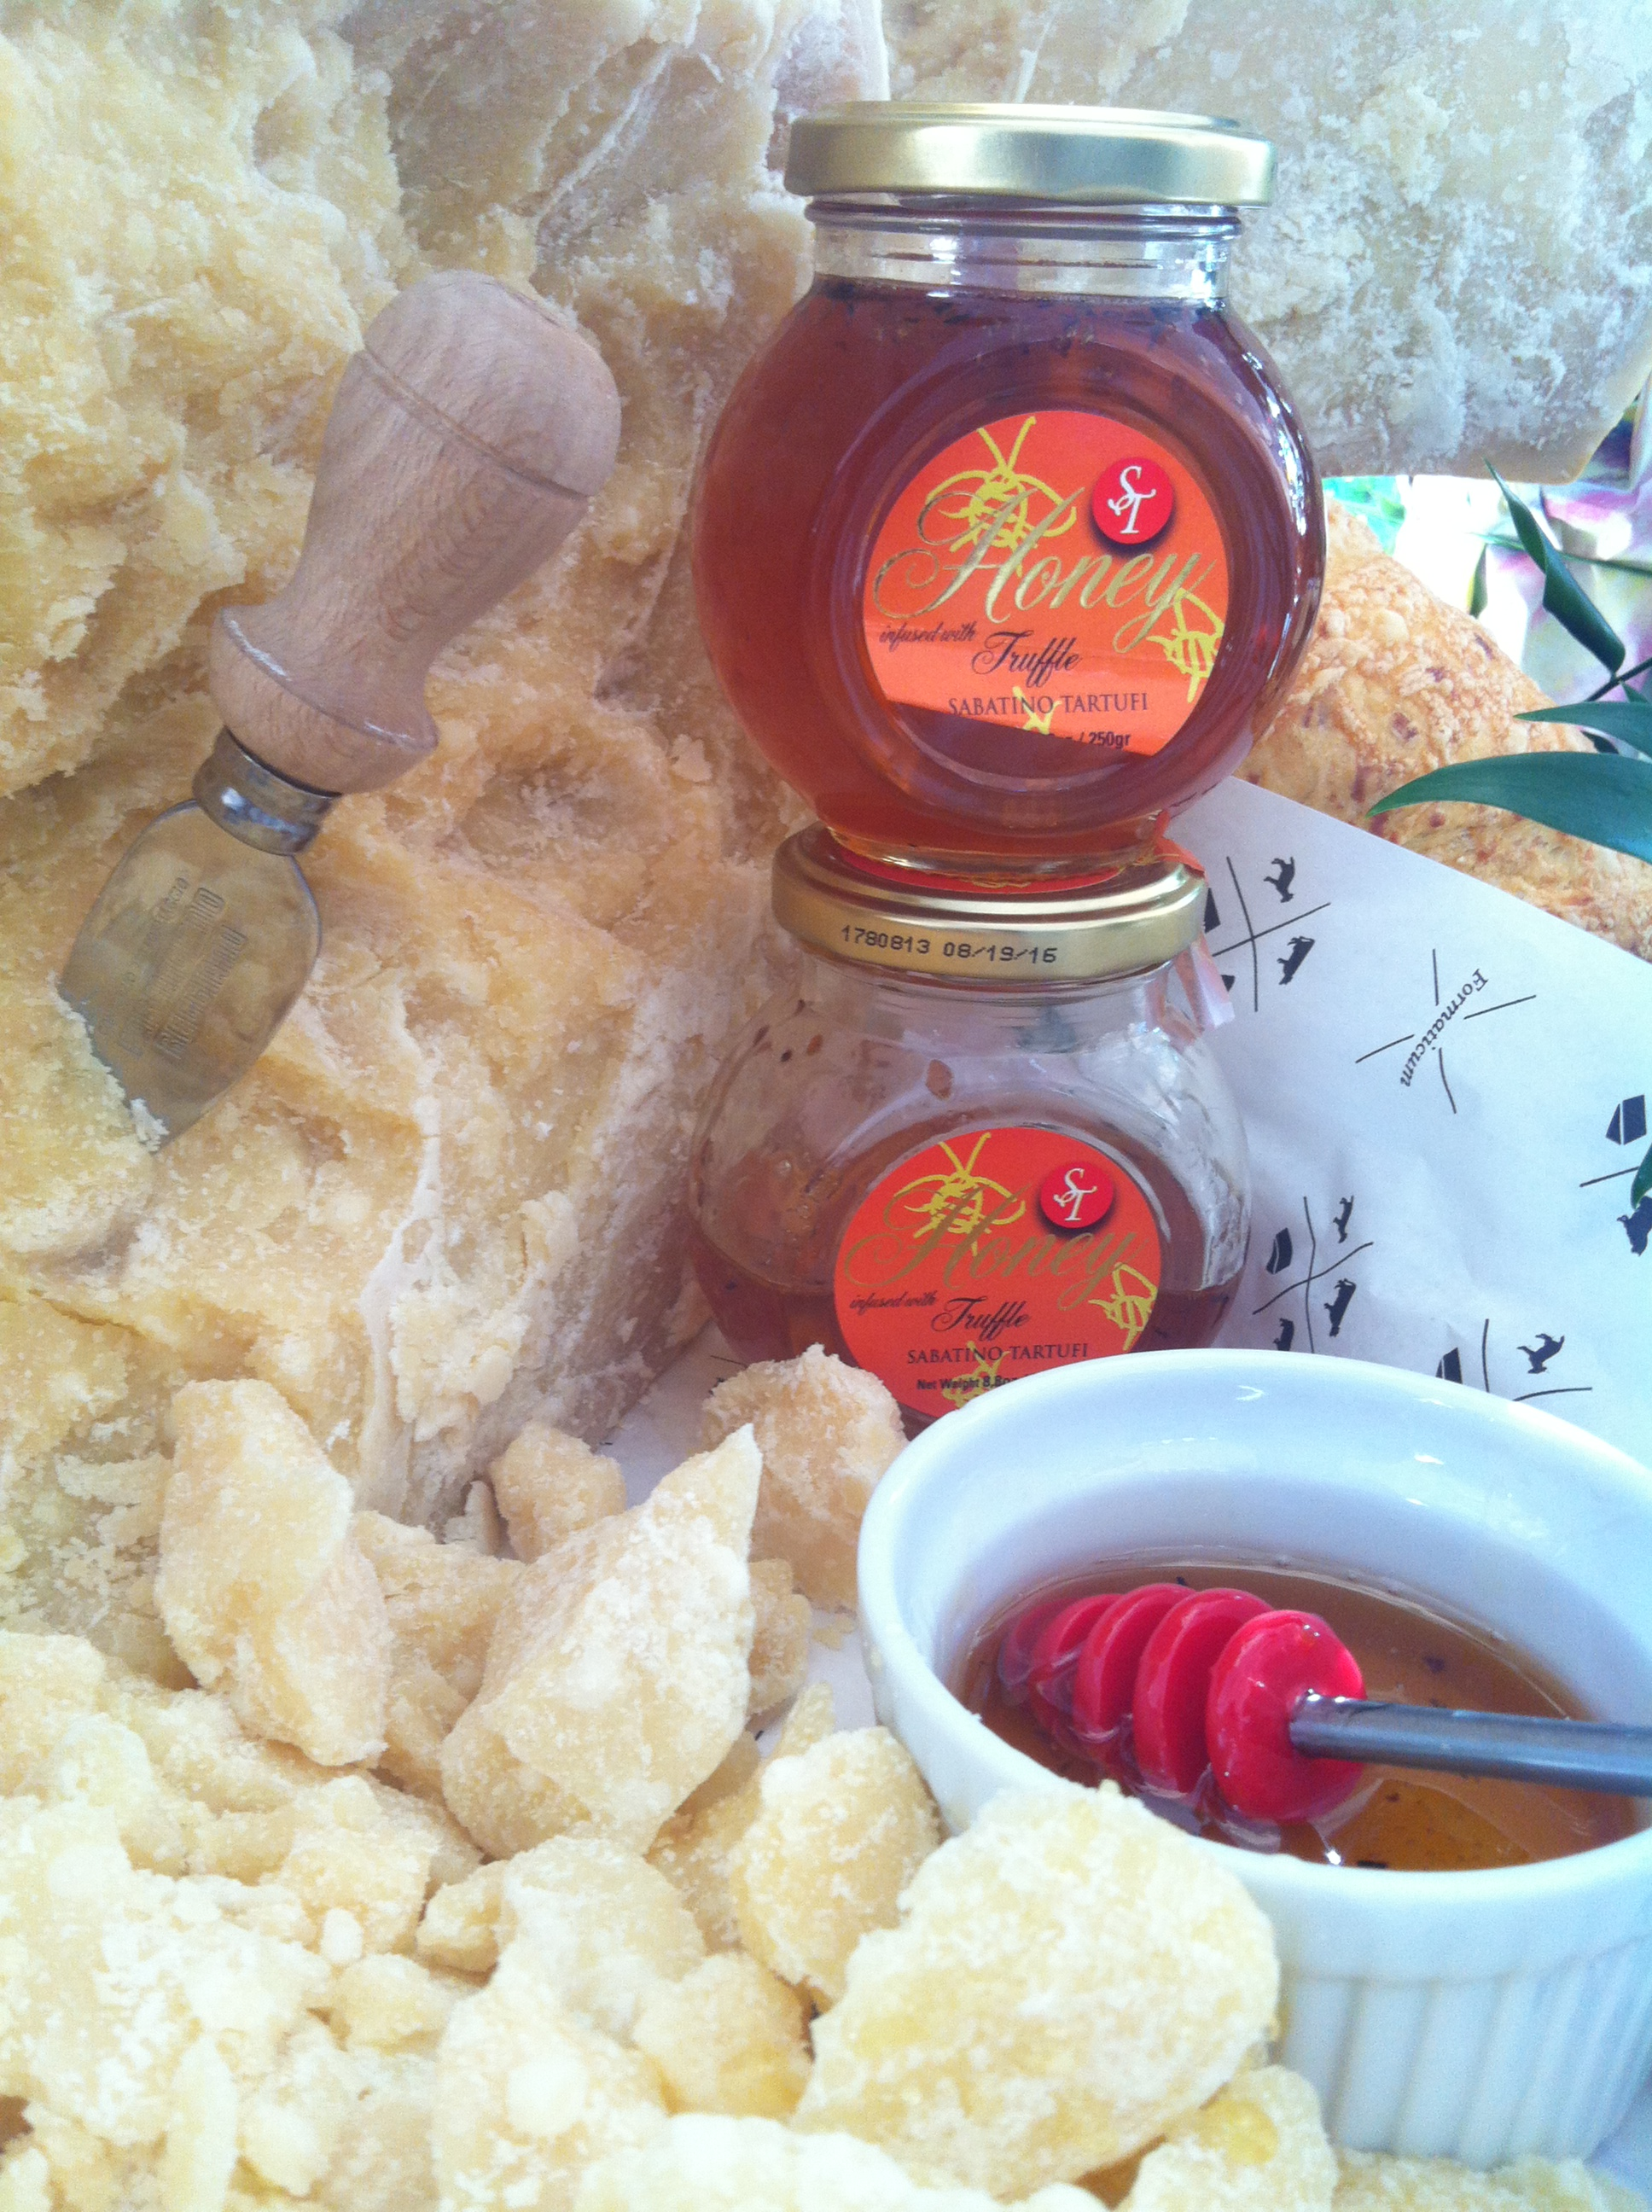 Truffle honey at Central Market's Passport Italy